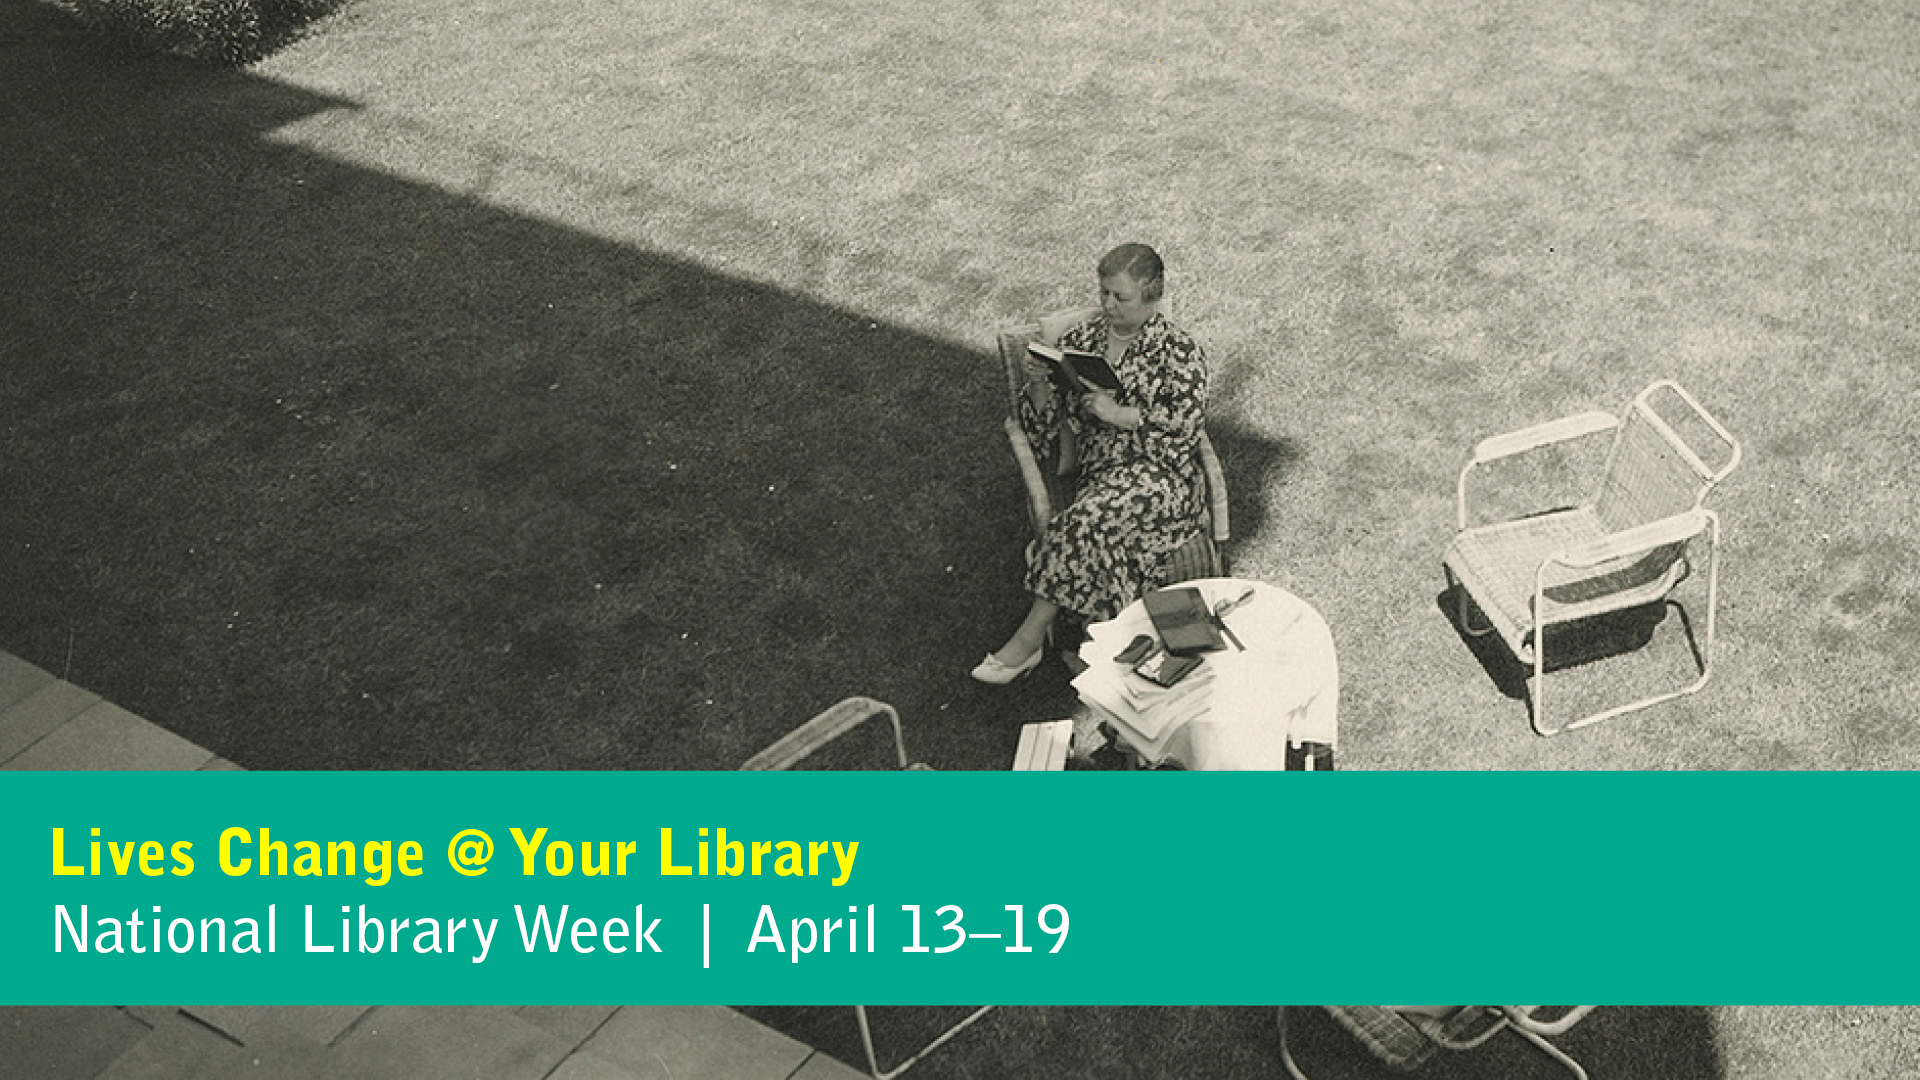 National Llibrary Week